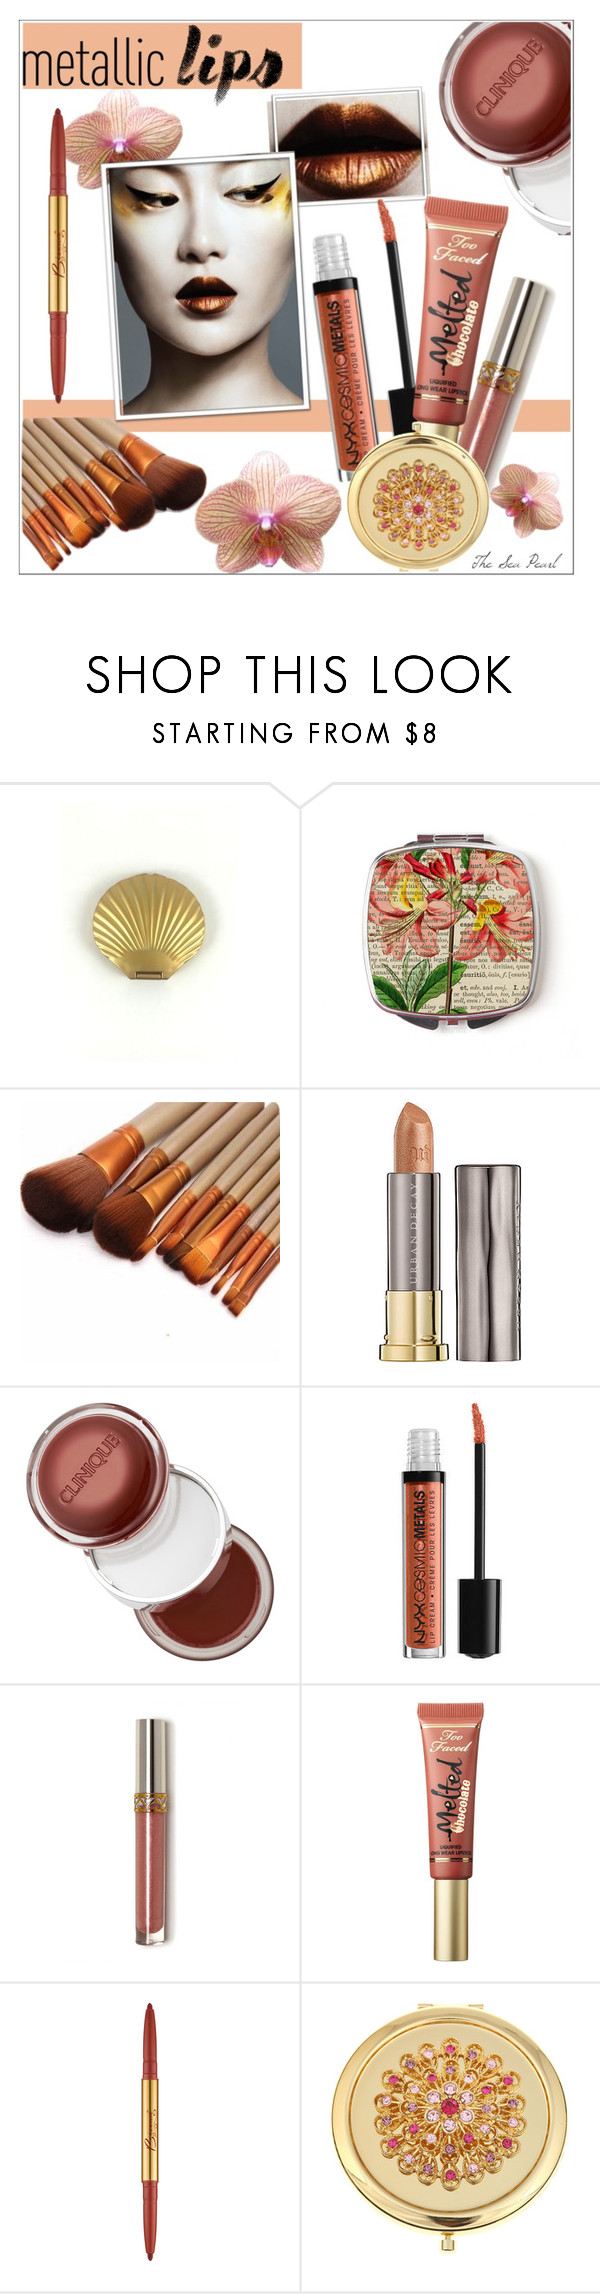 """Shine on: Metallic Lips - Copper Dreams"" by theseapearl ❤ liked on Polyvore featuring beauty, Urban Decay, Clinique, Too Faced Cosmetics, Bésame, Monet and metalliclips"